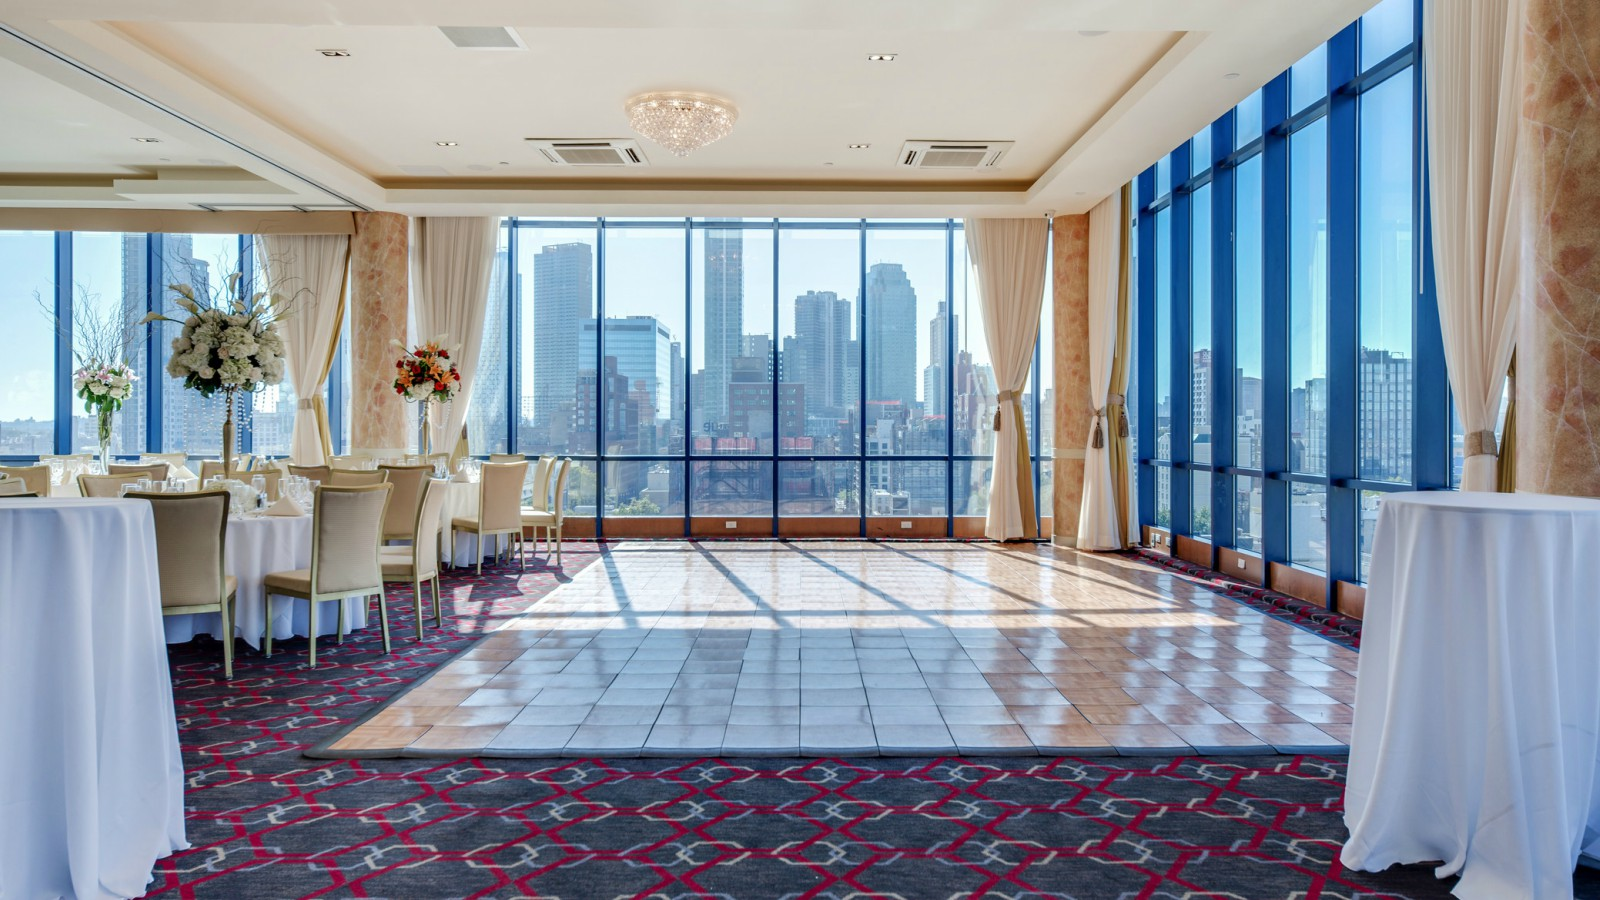 Long Island City Meeting Space - Penthouse Ballroom Space